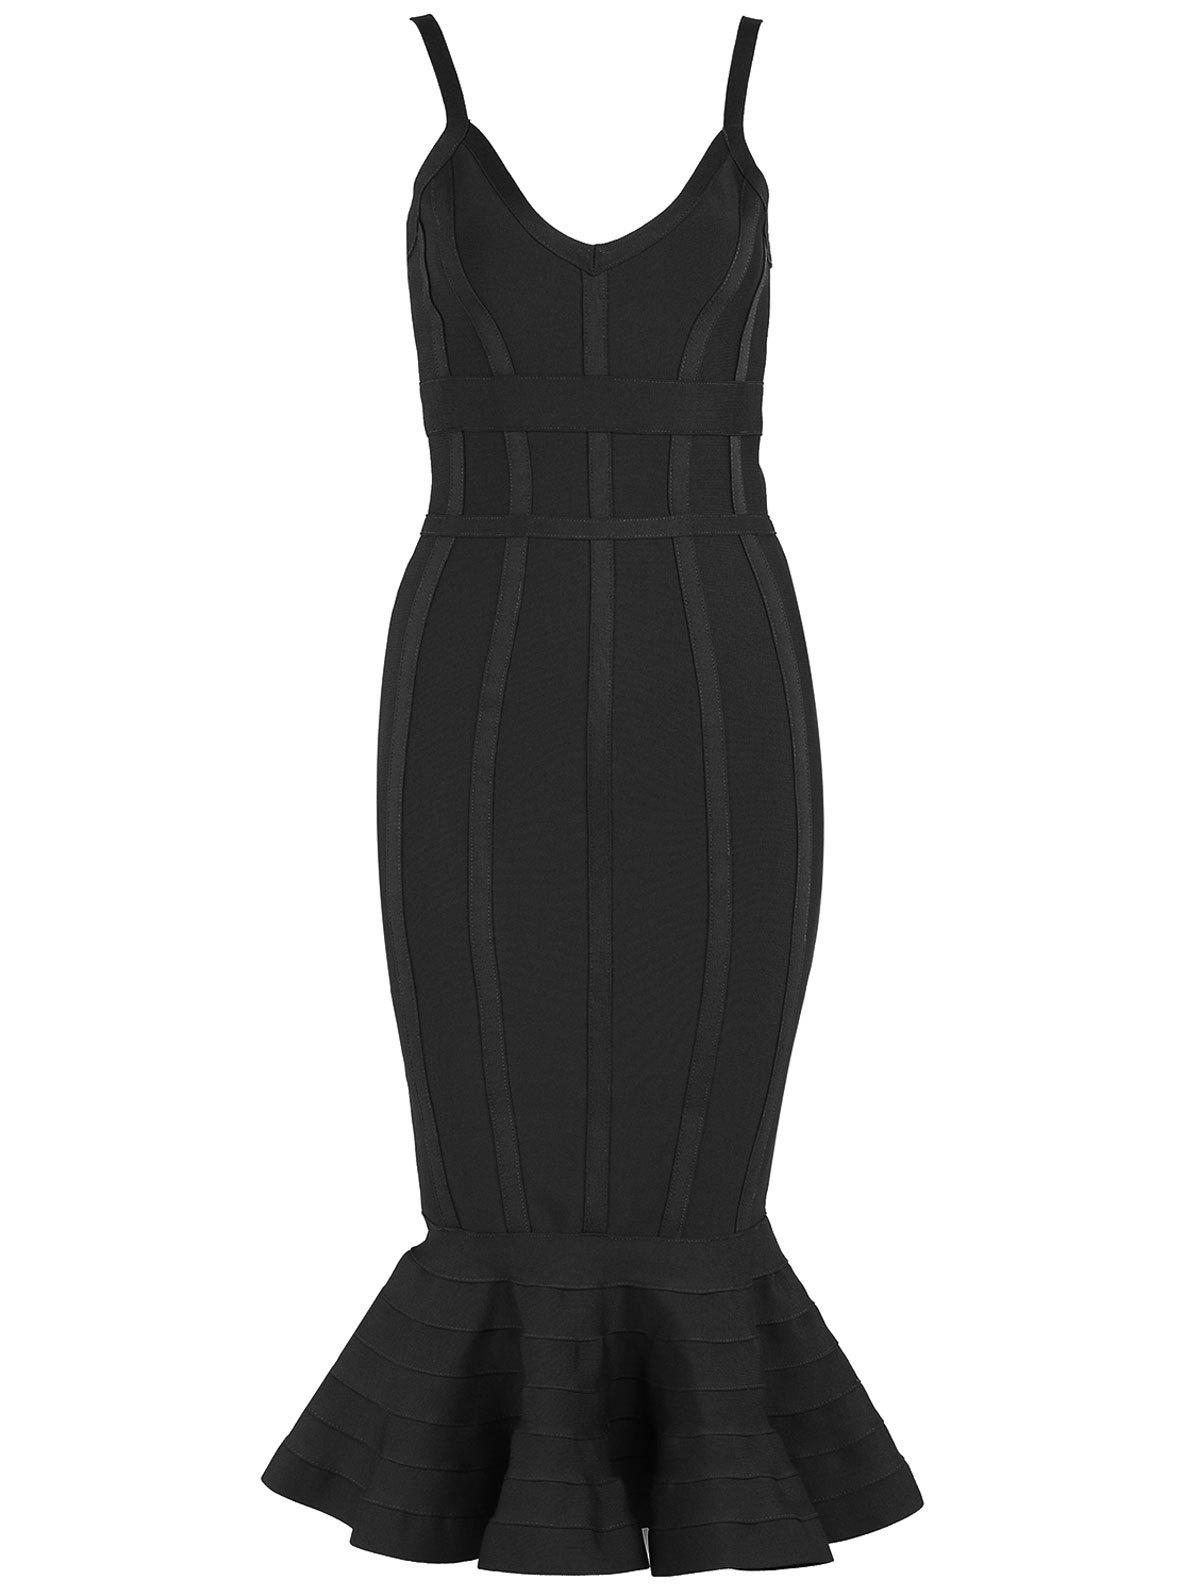 V-neck Mermaid Bodycon Slip Bandage Dress - BLACK S